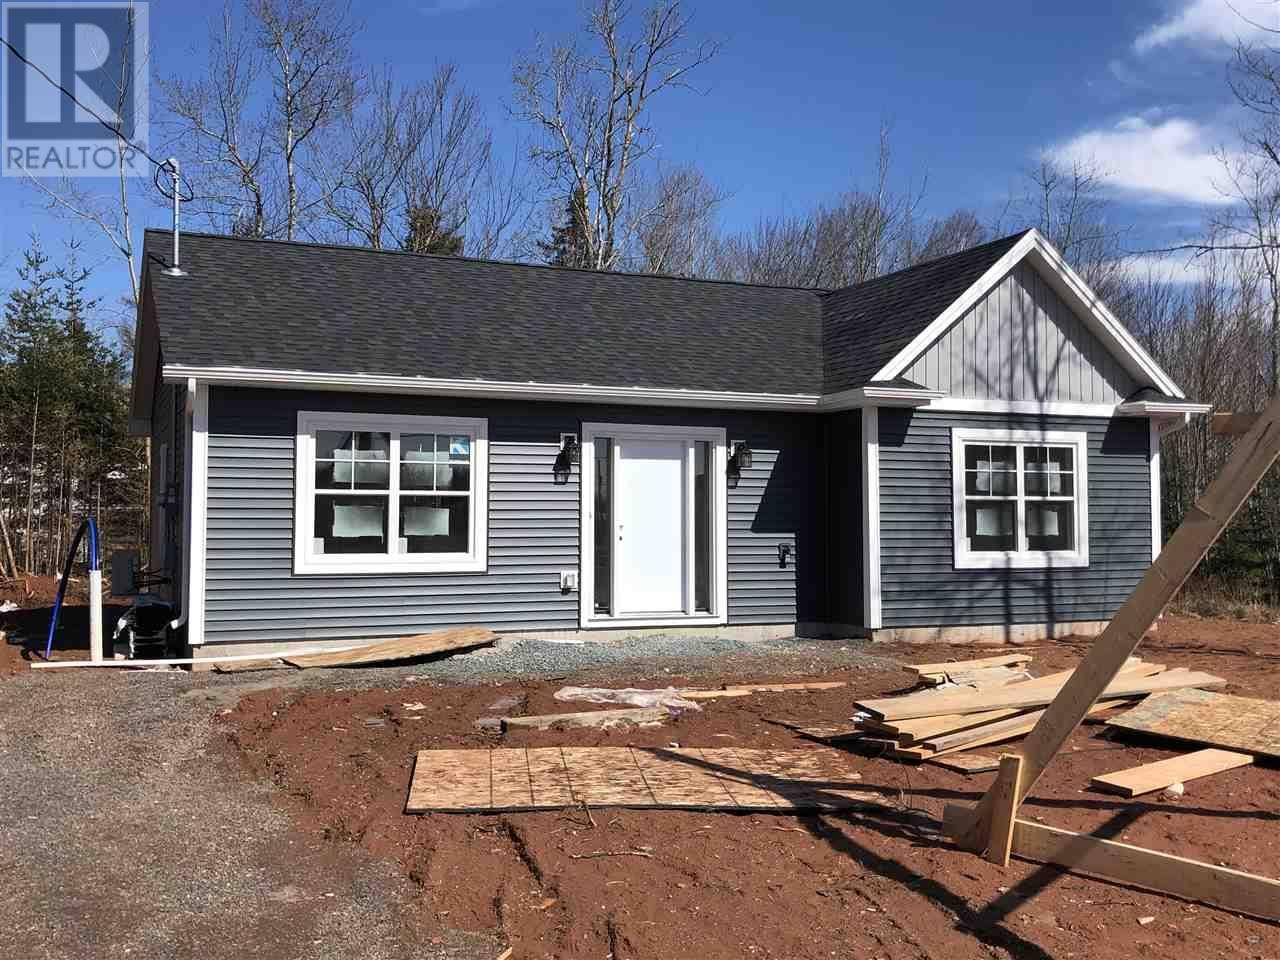 House for sale at 7 Cornerstone Dr Valley Nova Scotia - MLS: 201922812